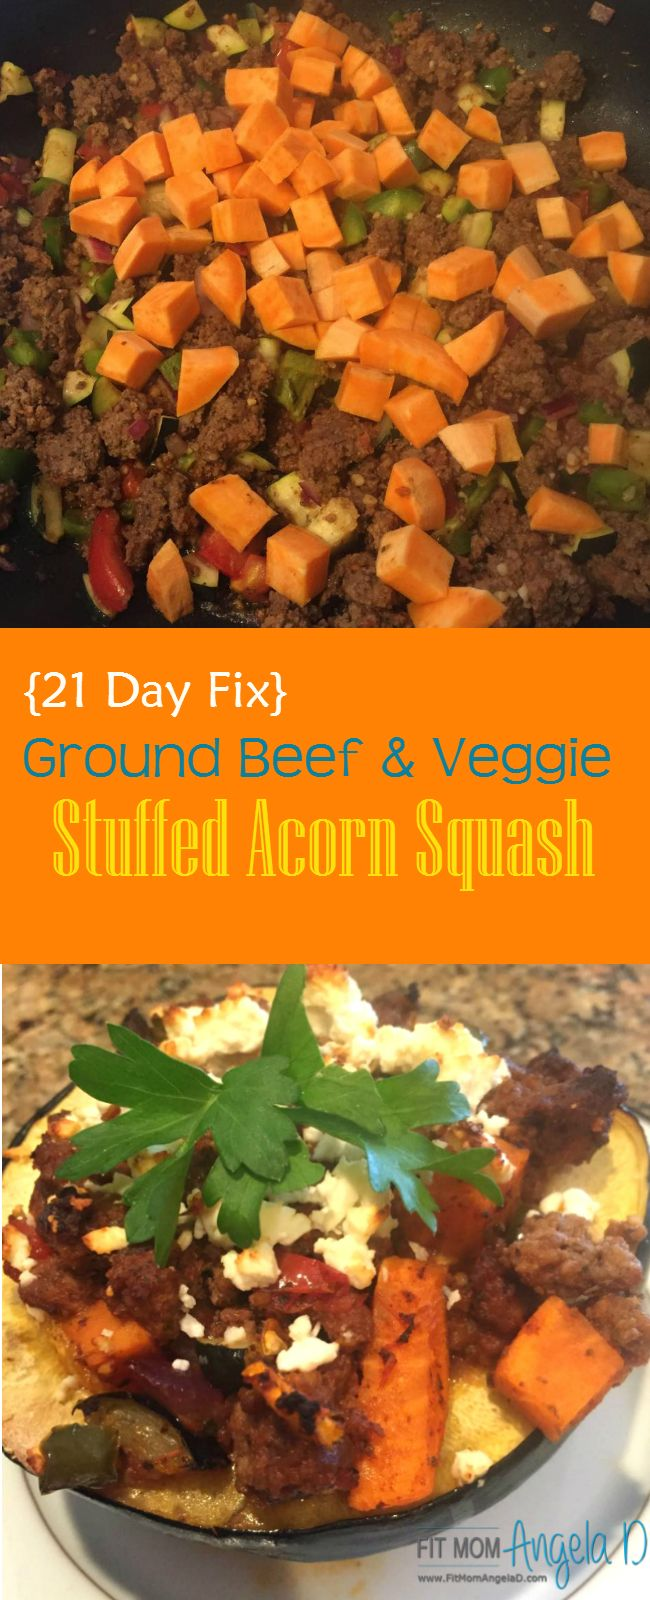 21 Day Fix Ground Beef & Veggie Stuffed Acorn Squash | FitMomAngelaD.com | Clean Eats | Healthy Fall Recipe | Healthy Dinner | Perfect for Fall | Easy Dinner Recipe (21 Day Fix Recipes Vegetables)